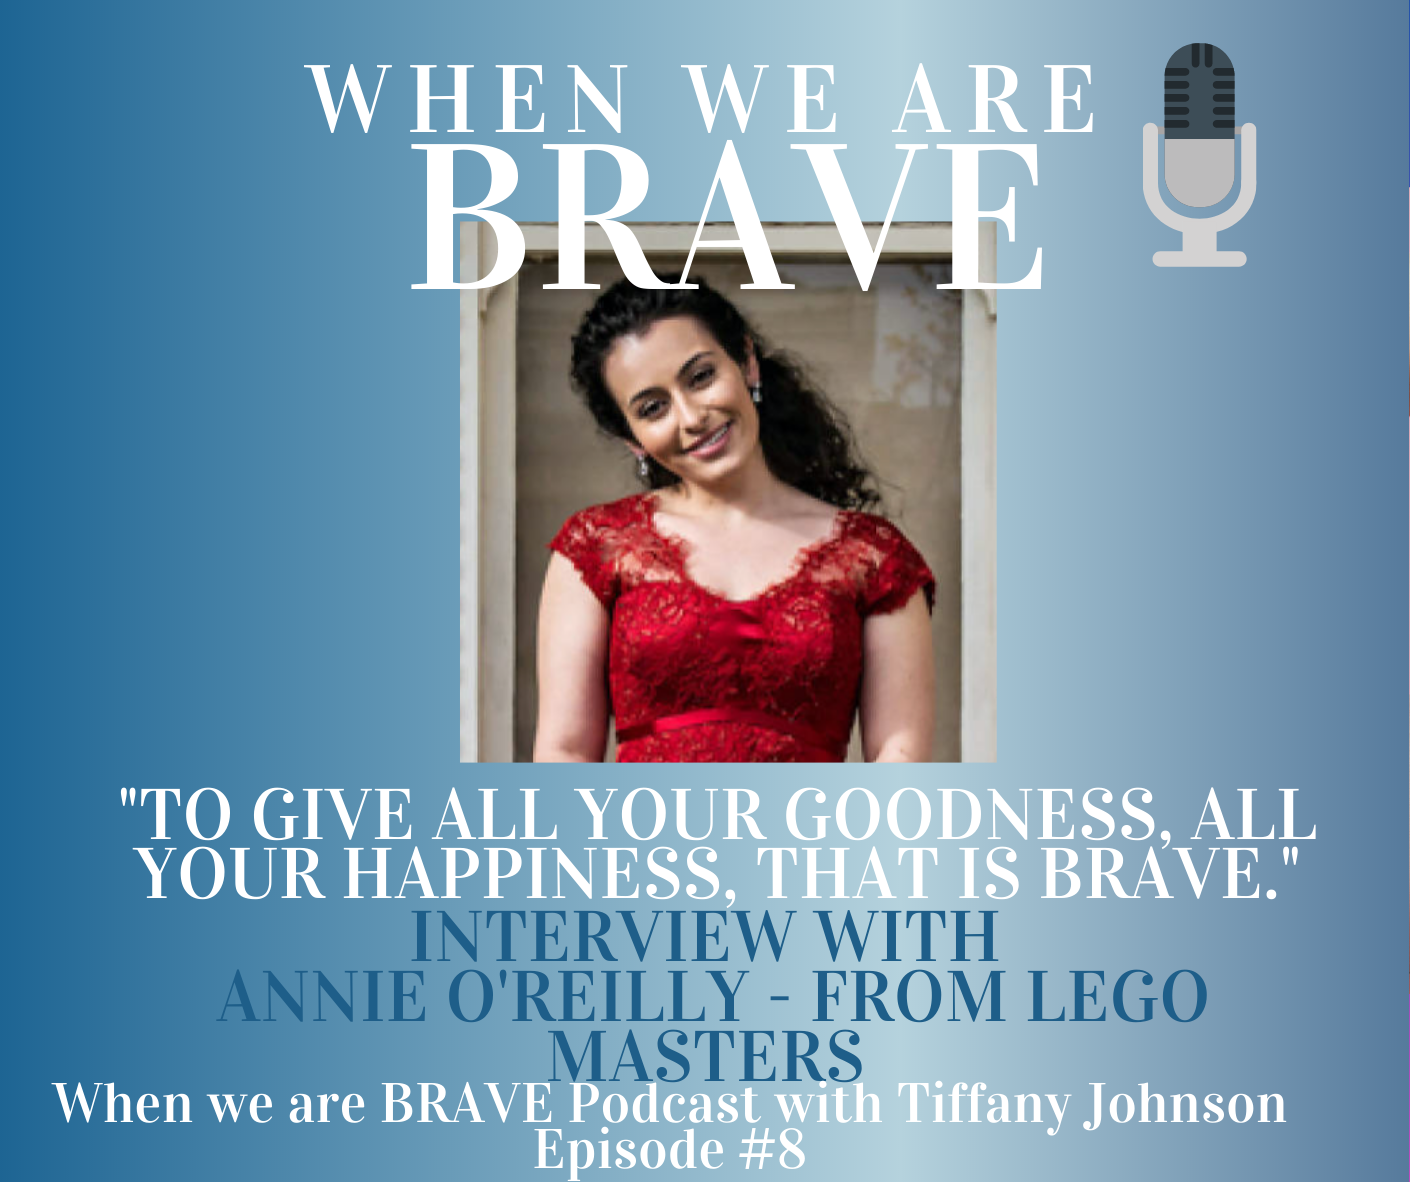 Finding your focus with Annie O'Reilly from Lego Masters on the When we are Brave podcast